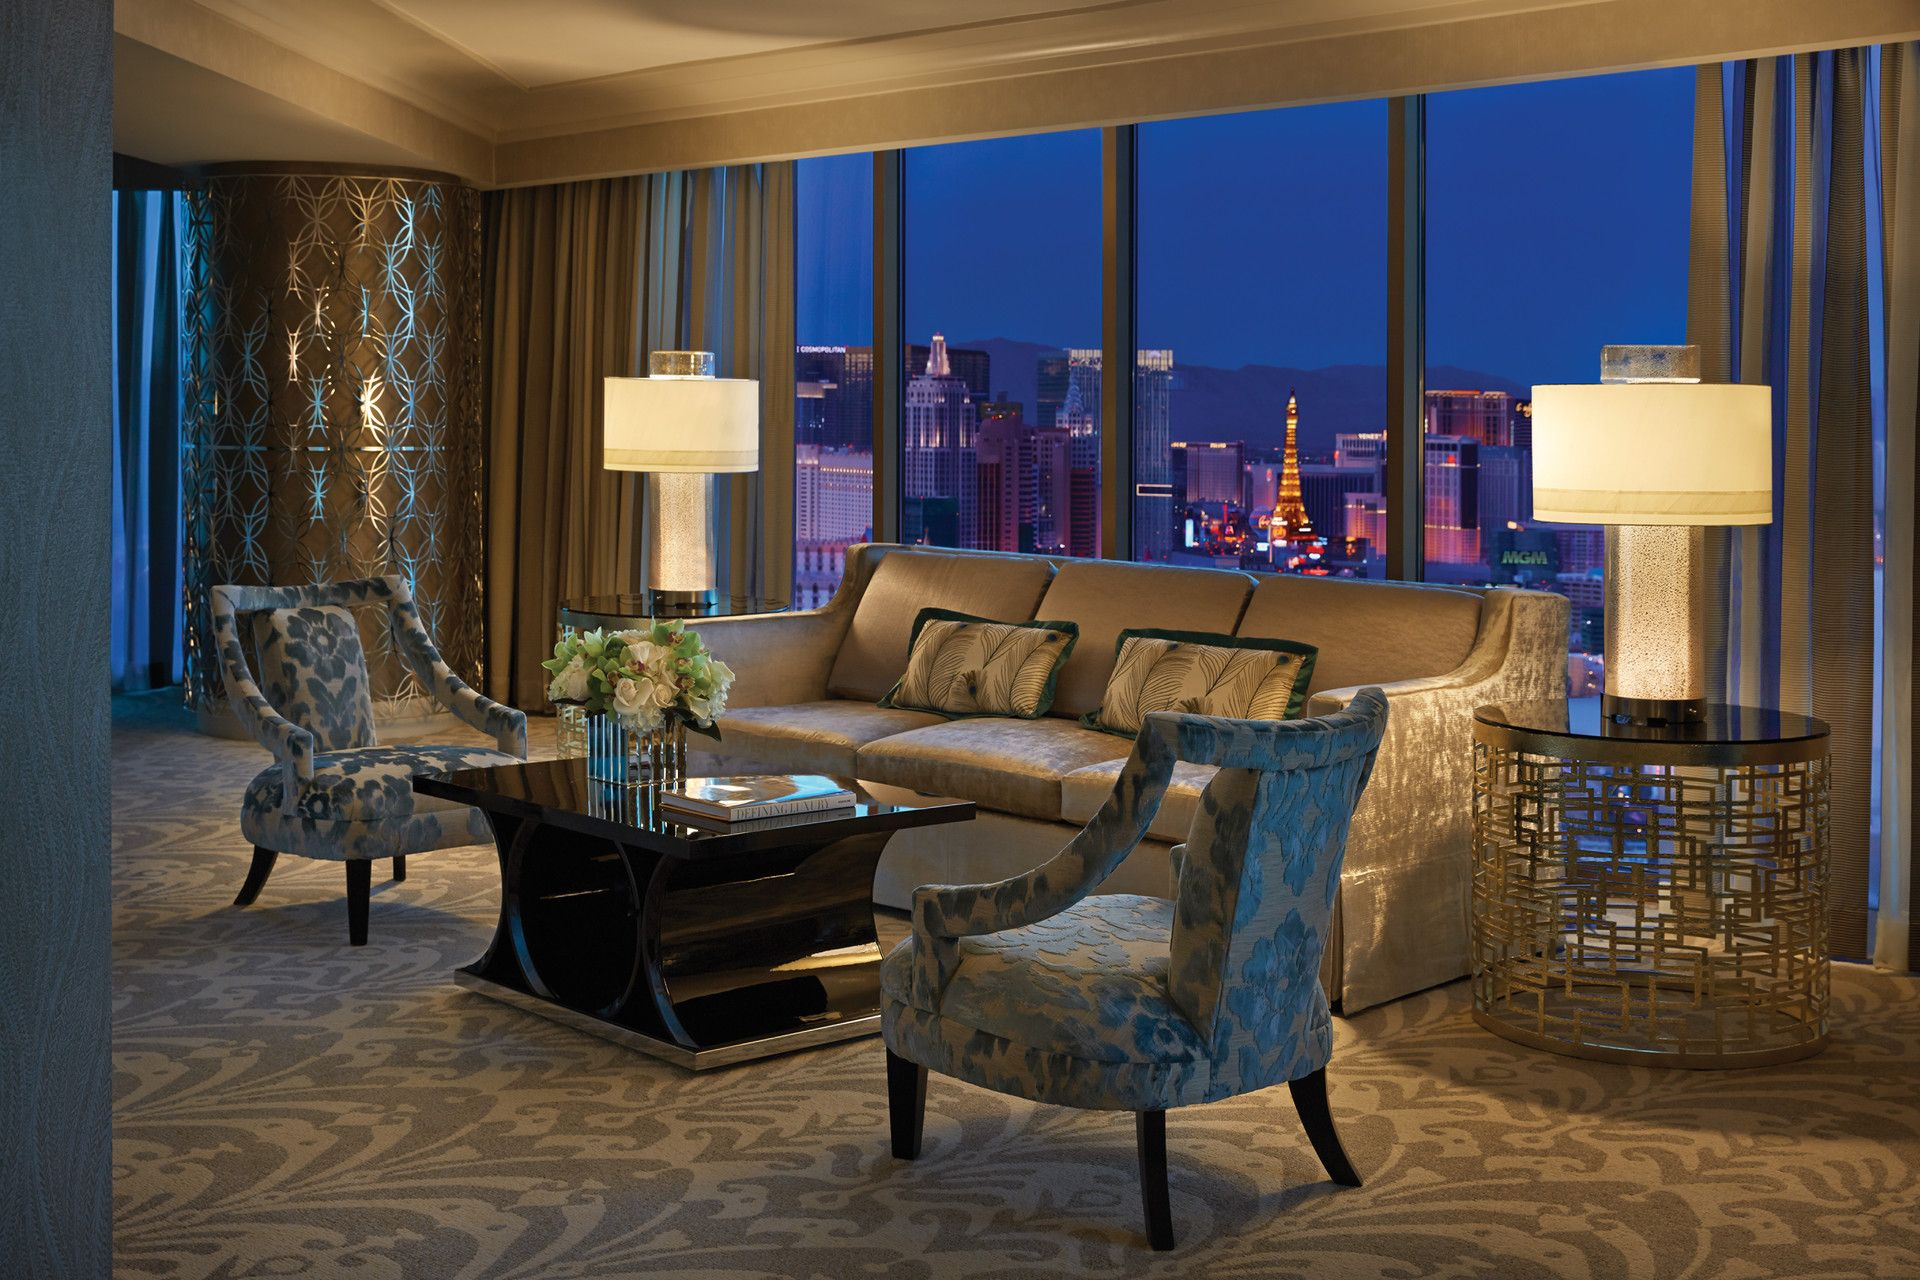 The Presidential Strip-View Suite offers stunning views of the glittering Strip and its iconic marquees through floor-to-ceiling windows.